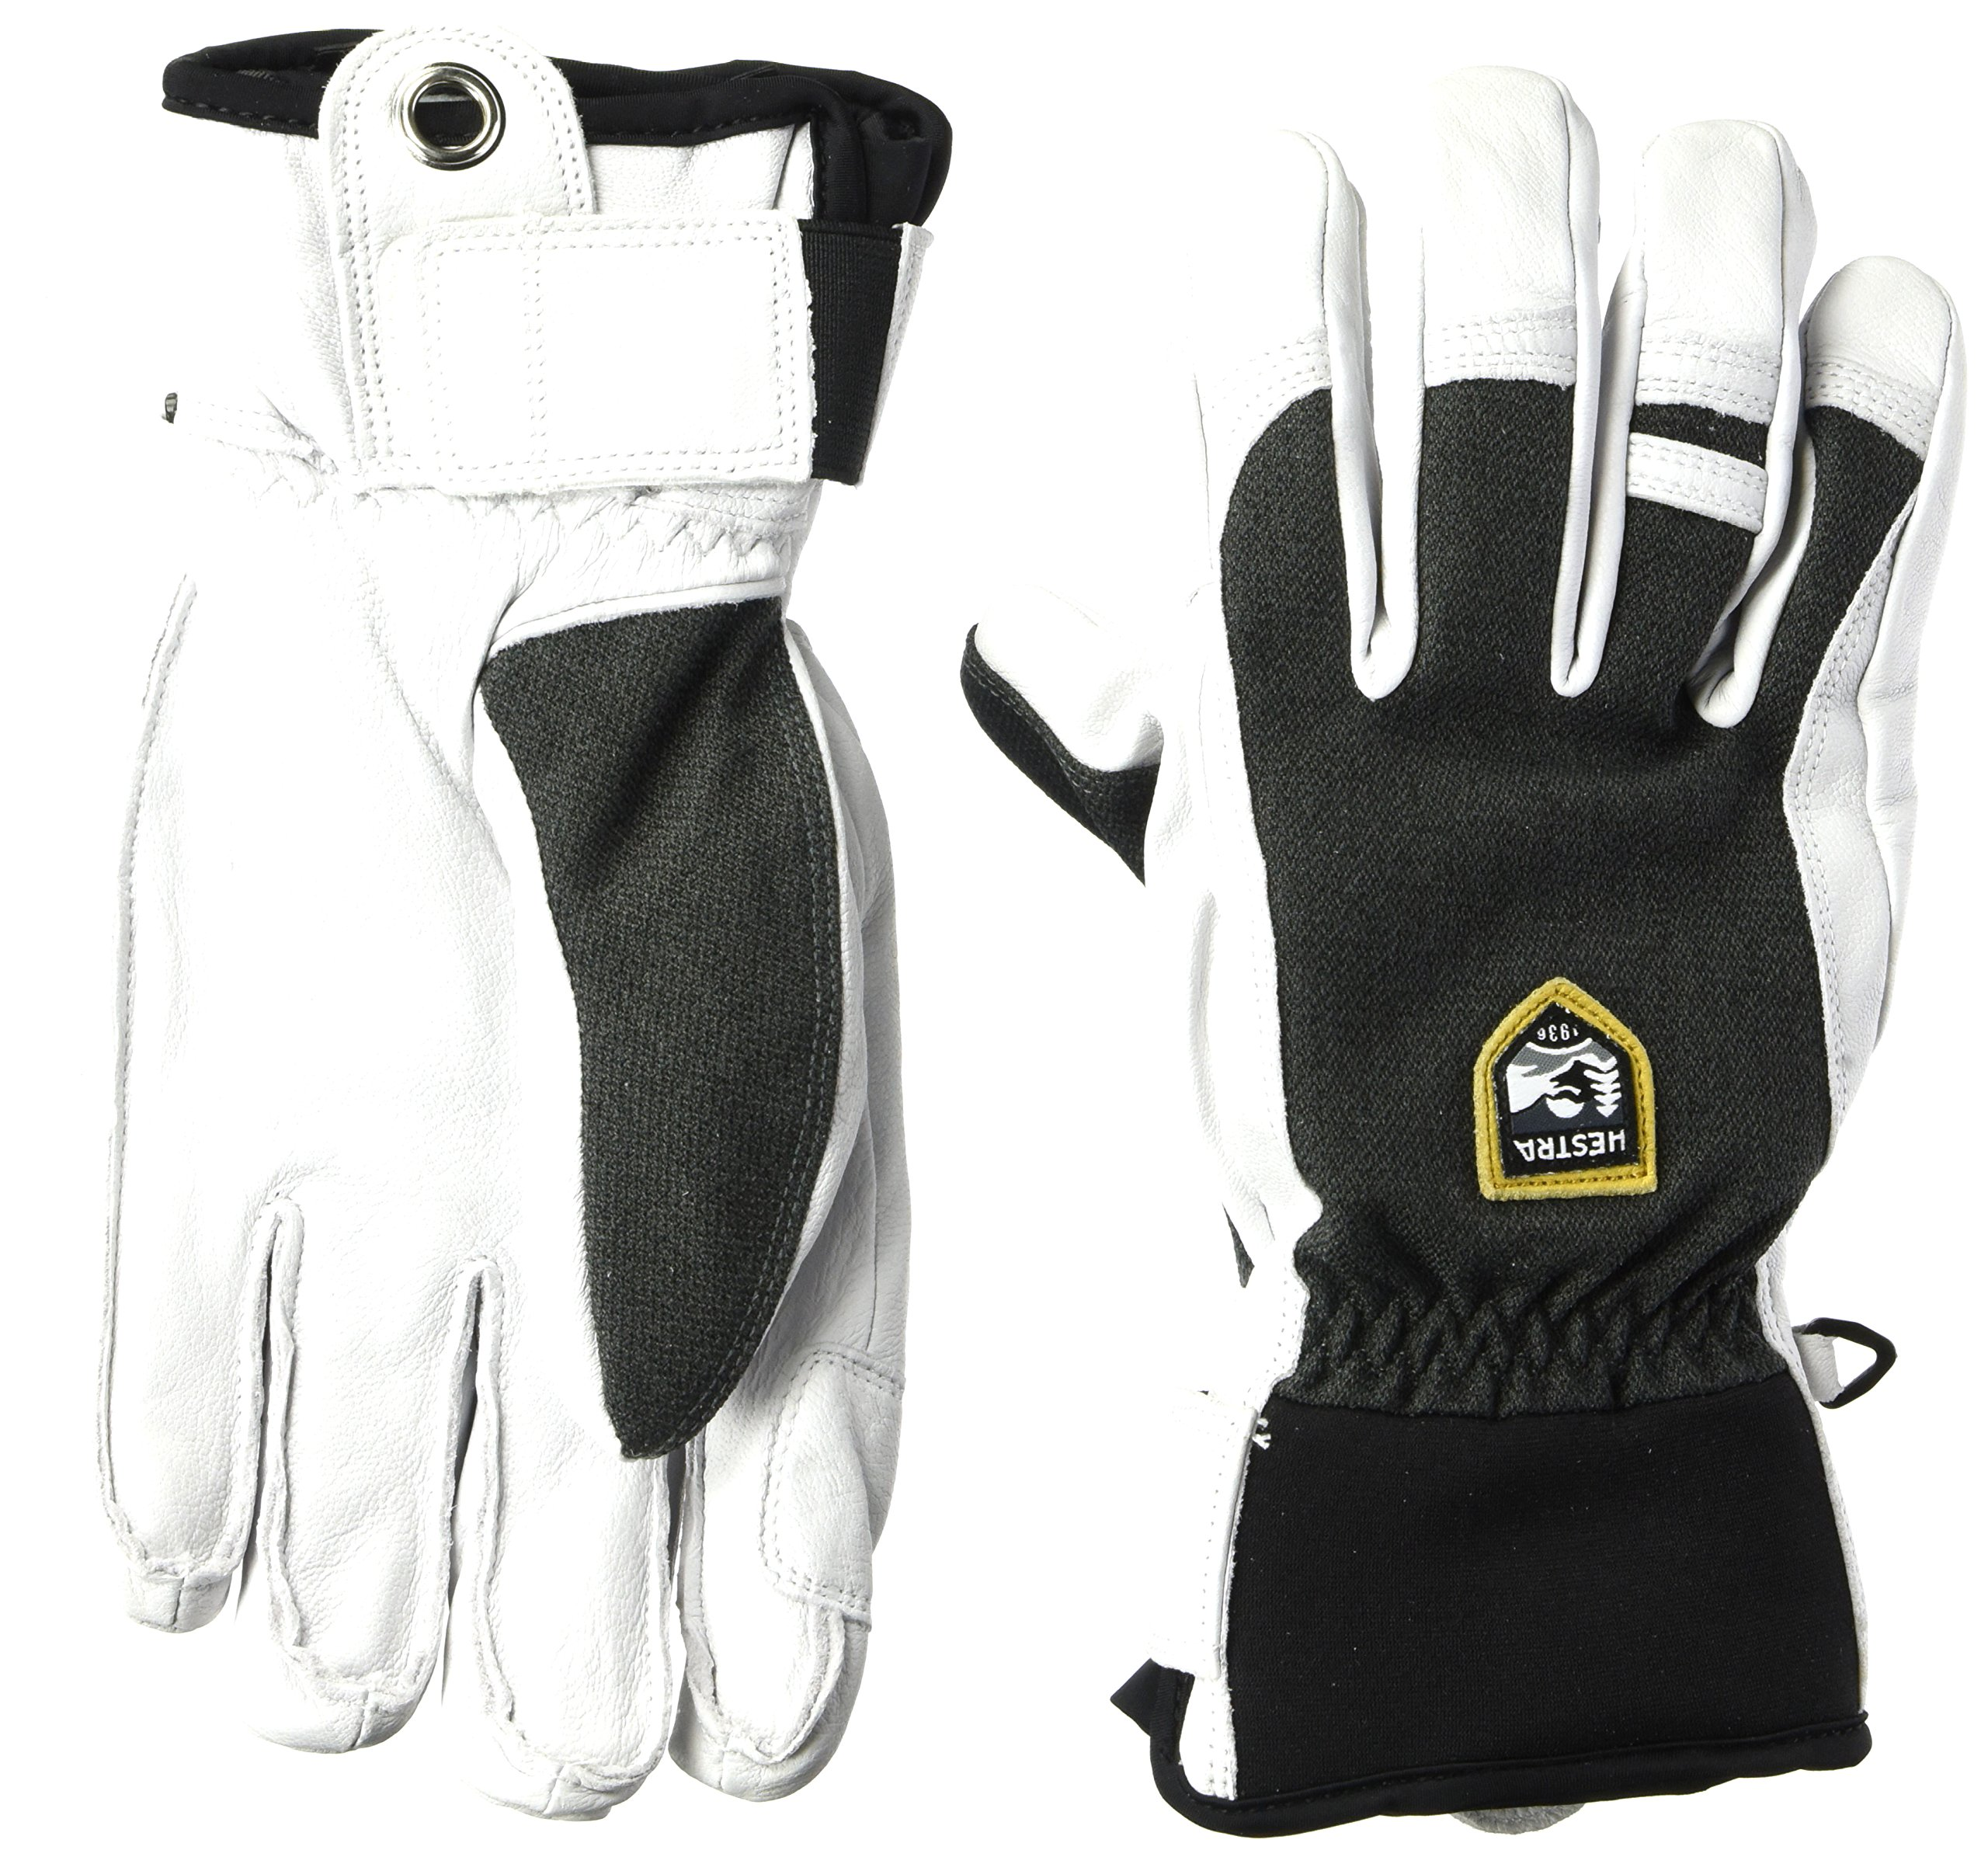 Hestra Ski Gloves: Army Leather Patrol Winter Cold Weather Gloves, Charcoal, 11